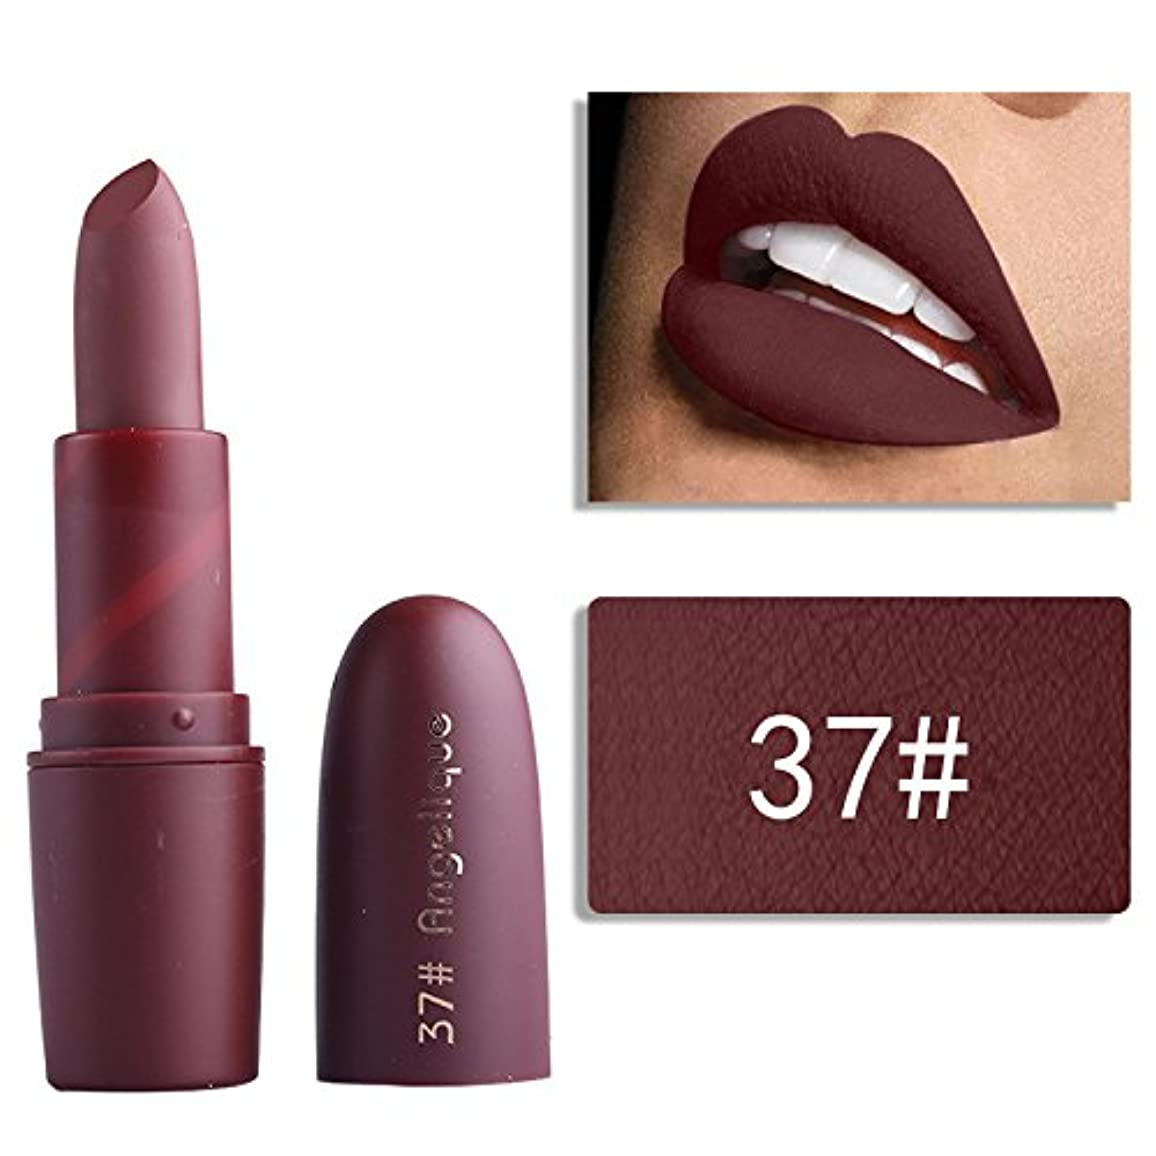 の中で排他的離れてMiss Rose Nude Lipstick 22 colors Waterproof Vampire Brown Beauty Baby Lips Batom Matte lipstick Makeup Tats Eugenie...